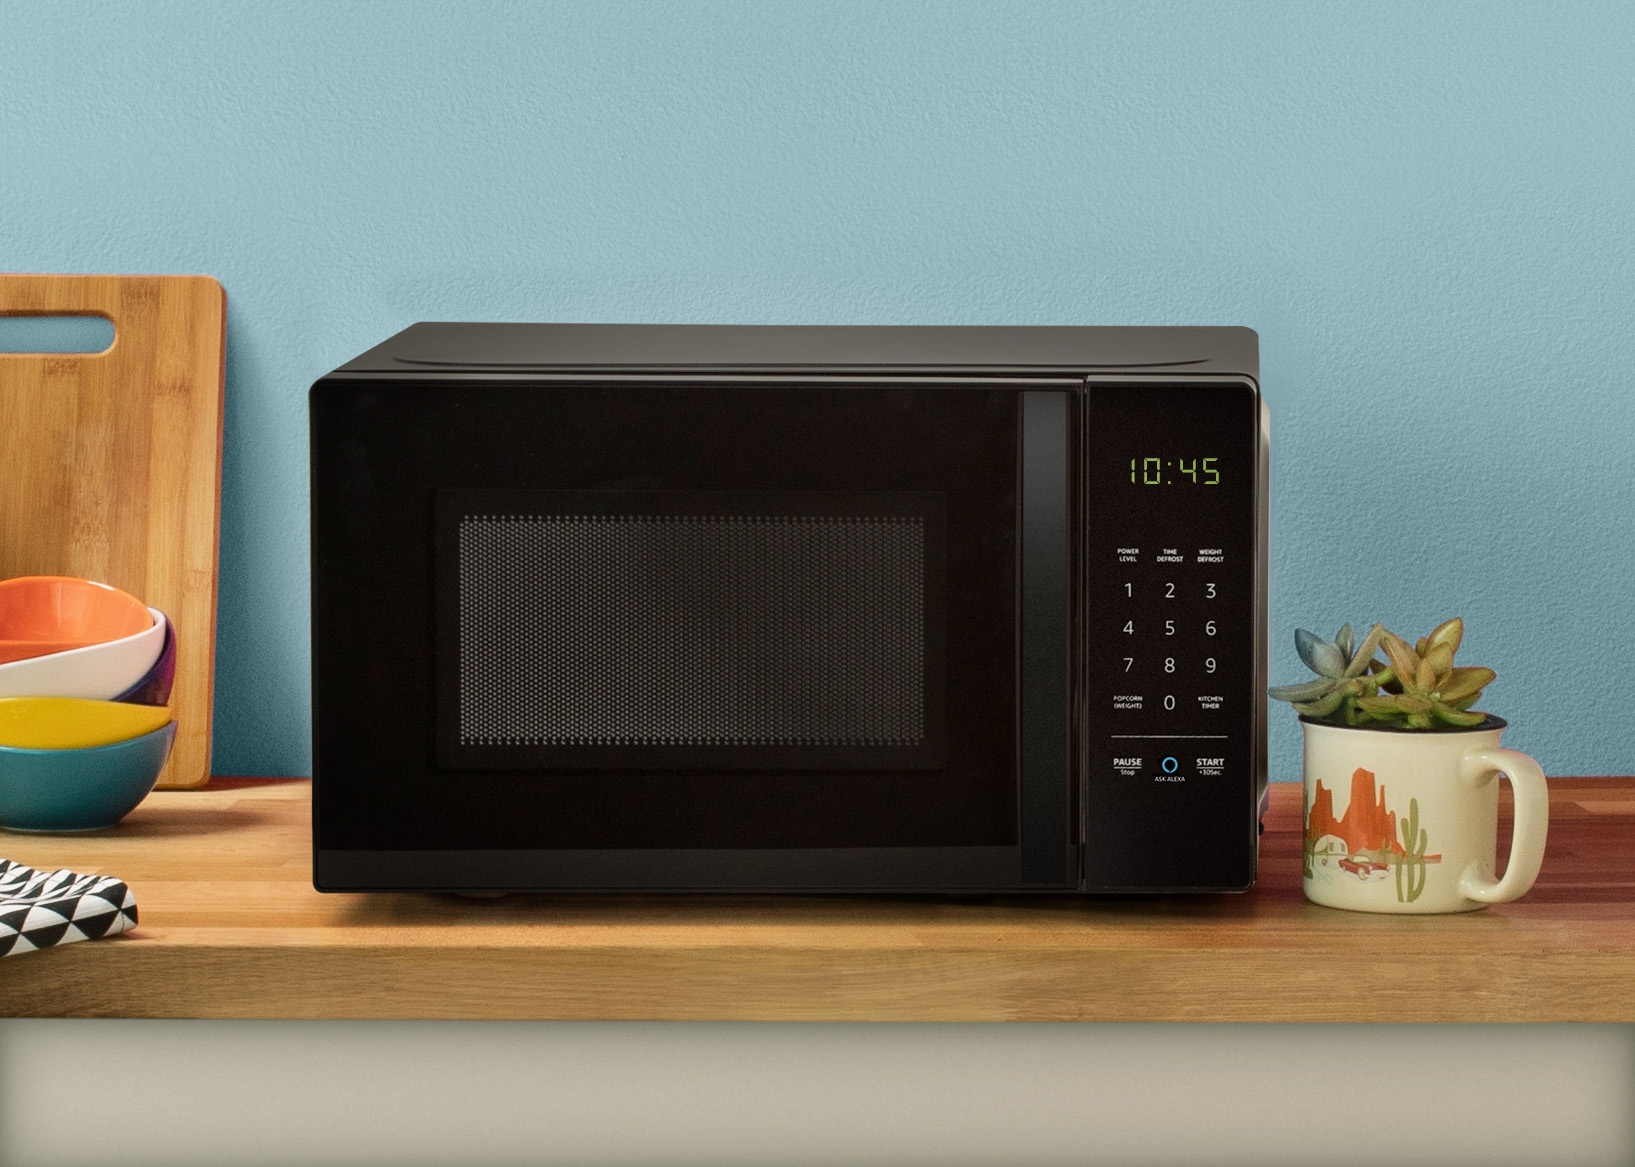 Up close with Amazon's $60 Alexa Microwave